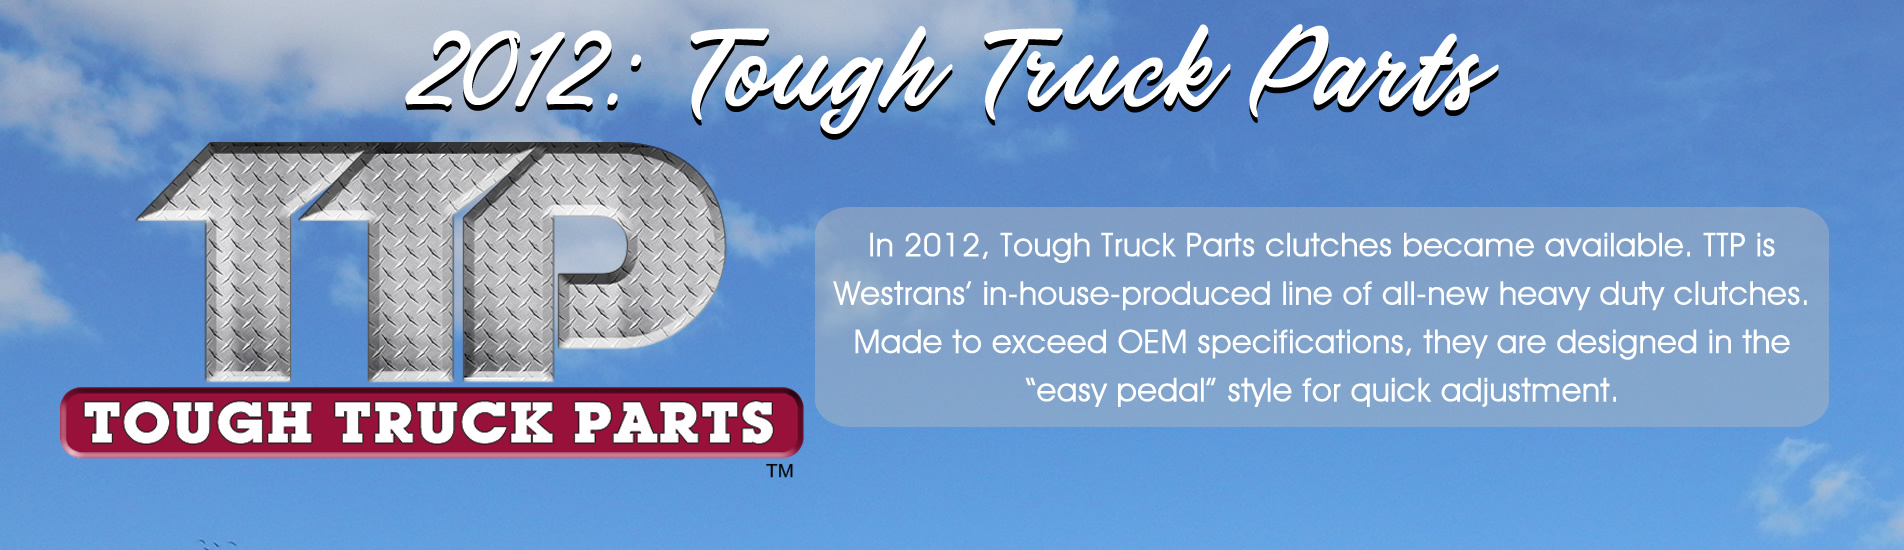 westrans-Tough-Truck-Parts-2010